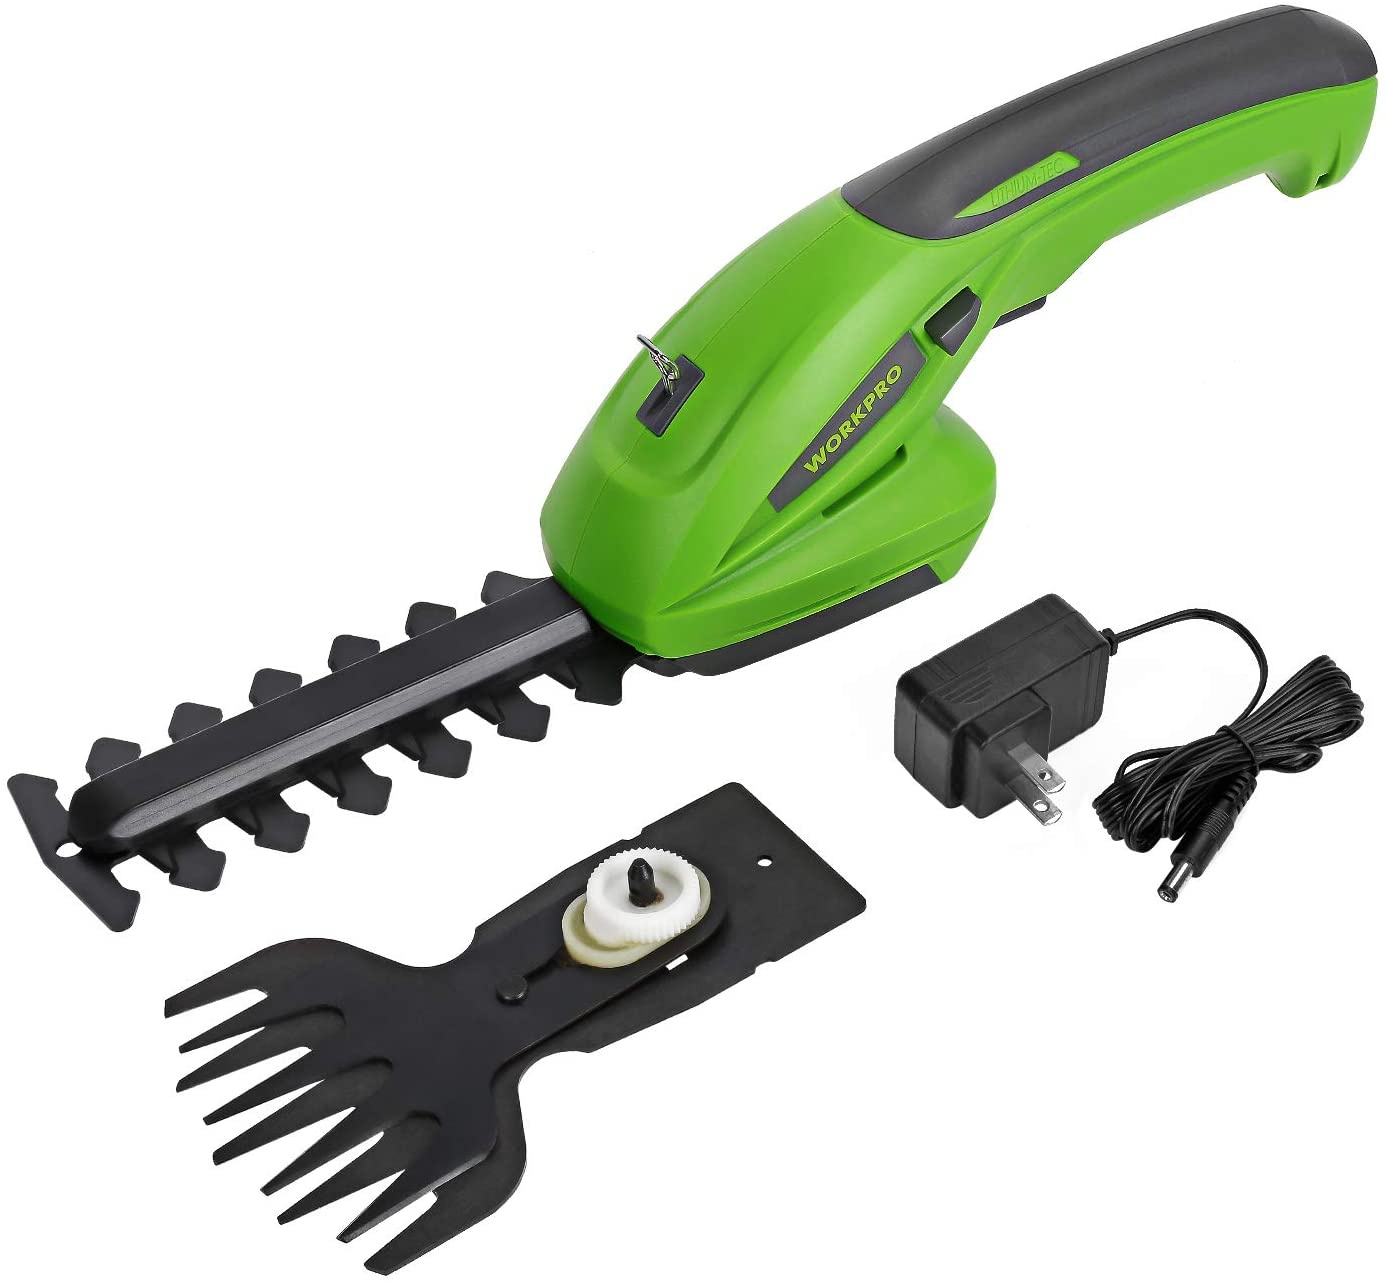 WorkPro 2 In 1 Cordless Grass Shear